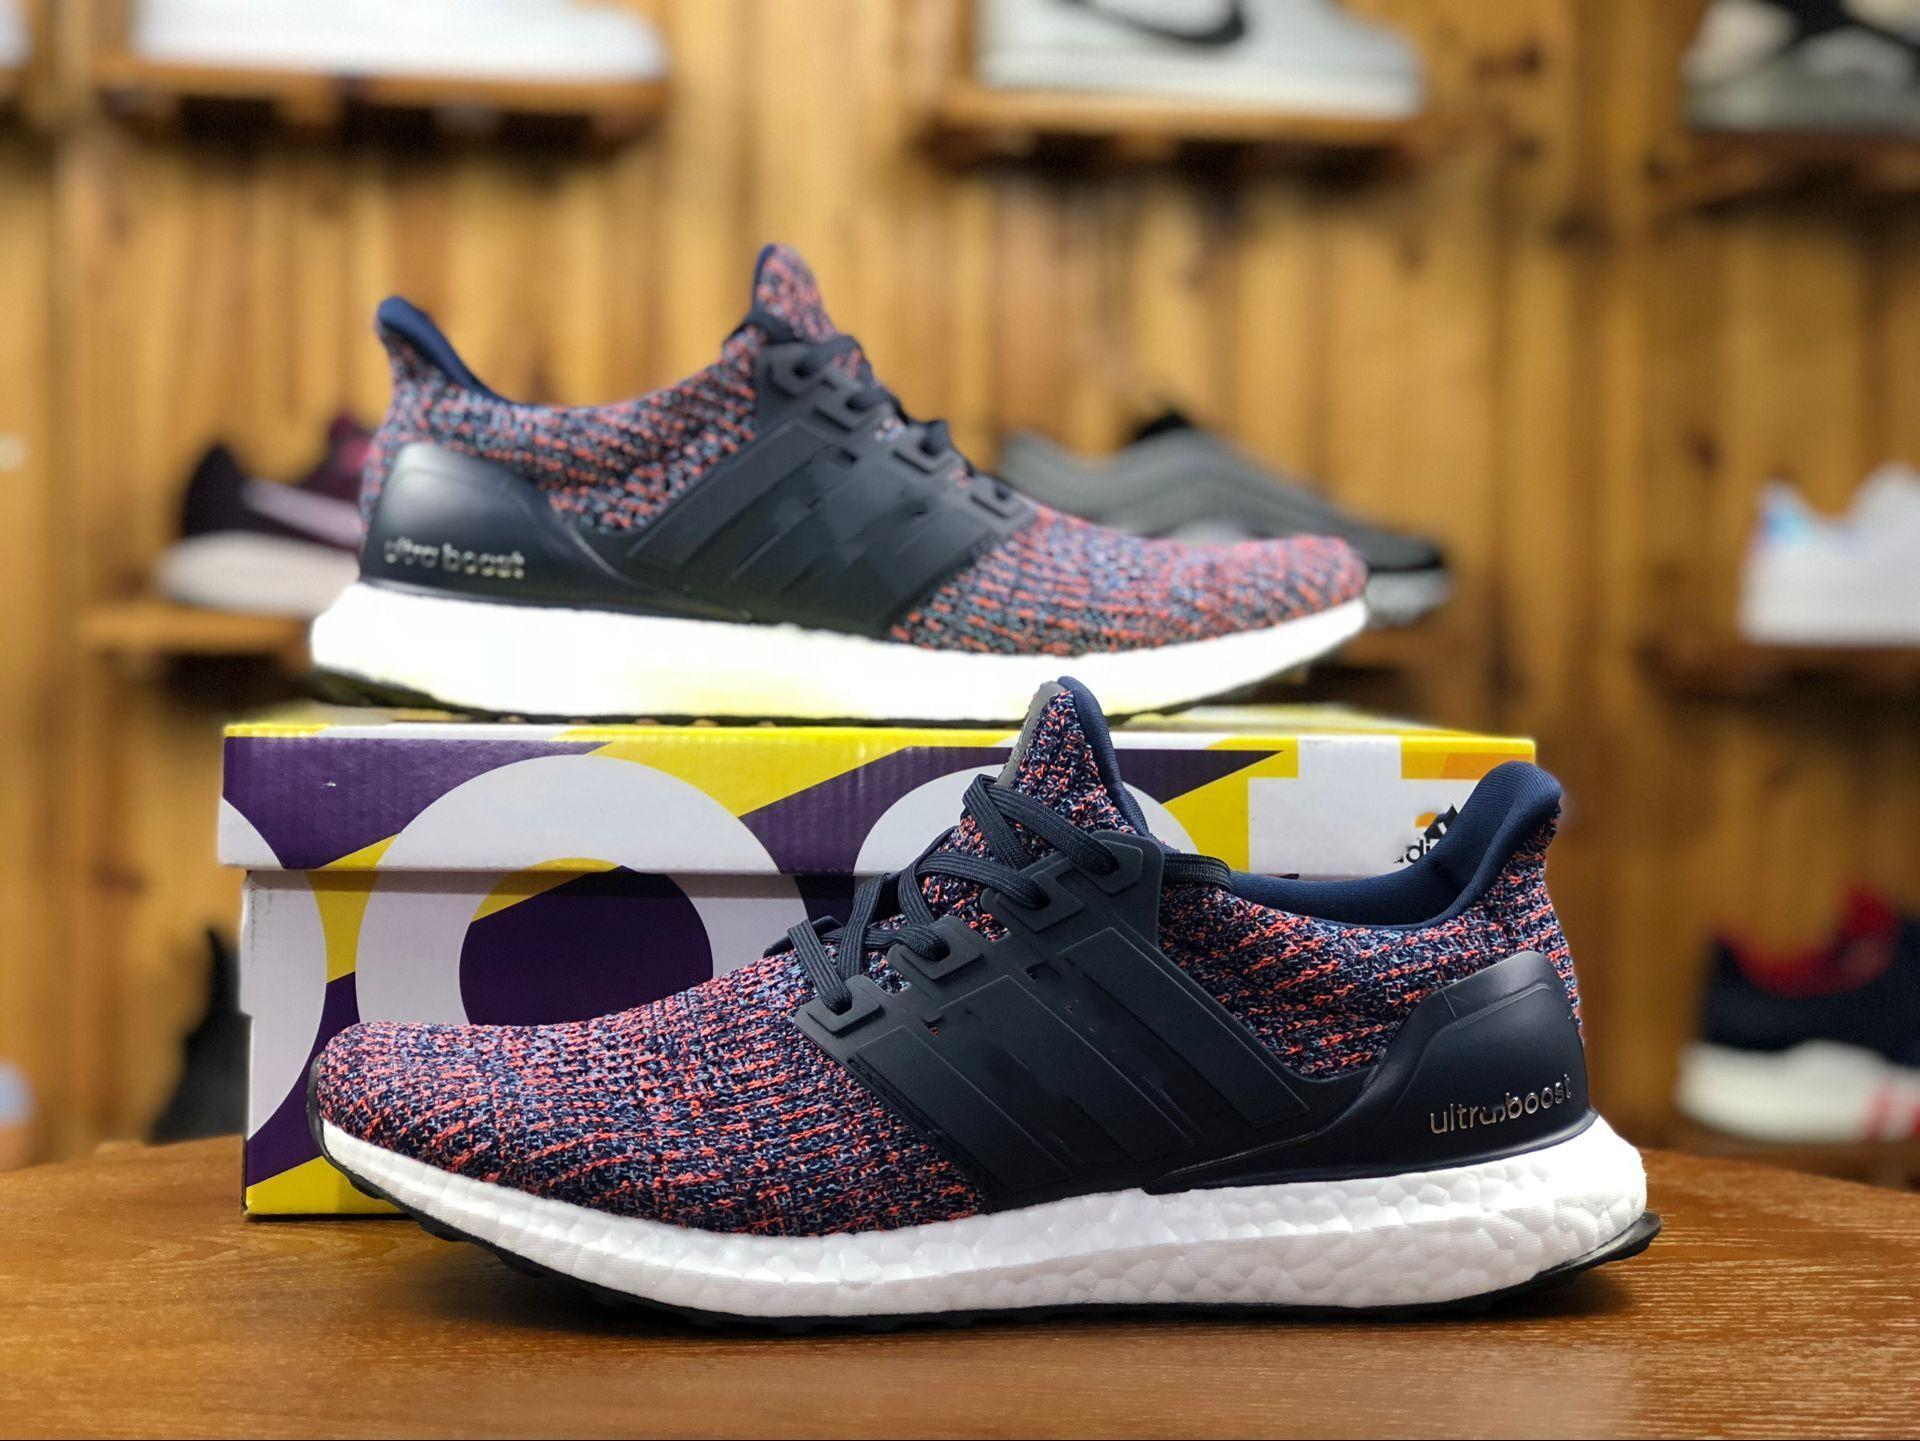 ultra boost 4.0 true to size